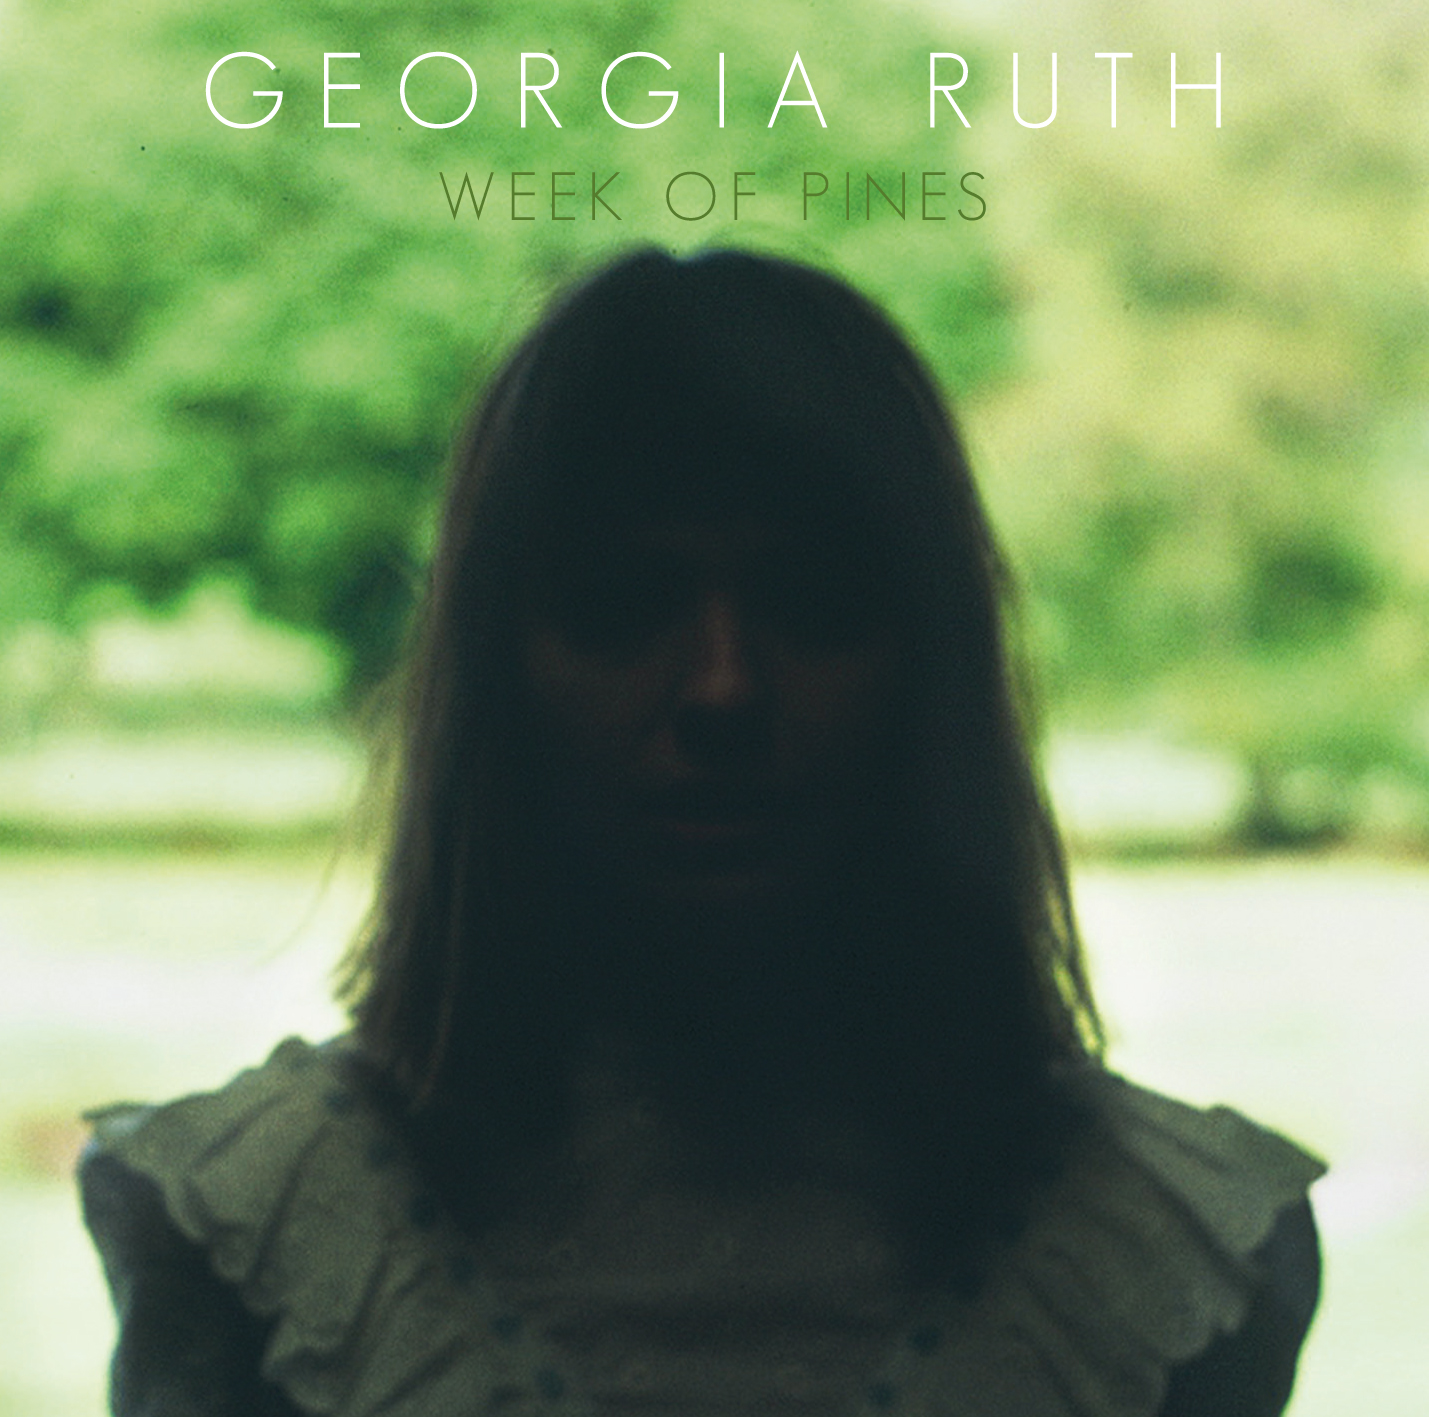 Georgia Ruth Week of Pines